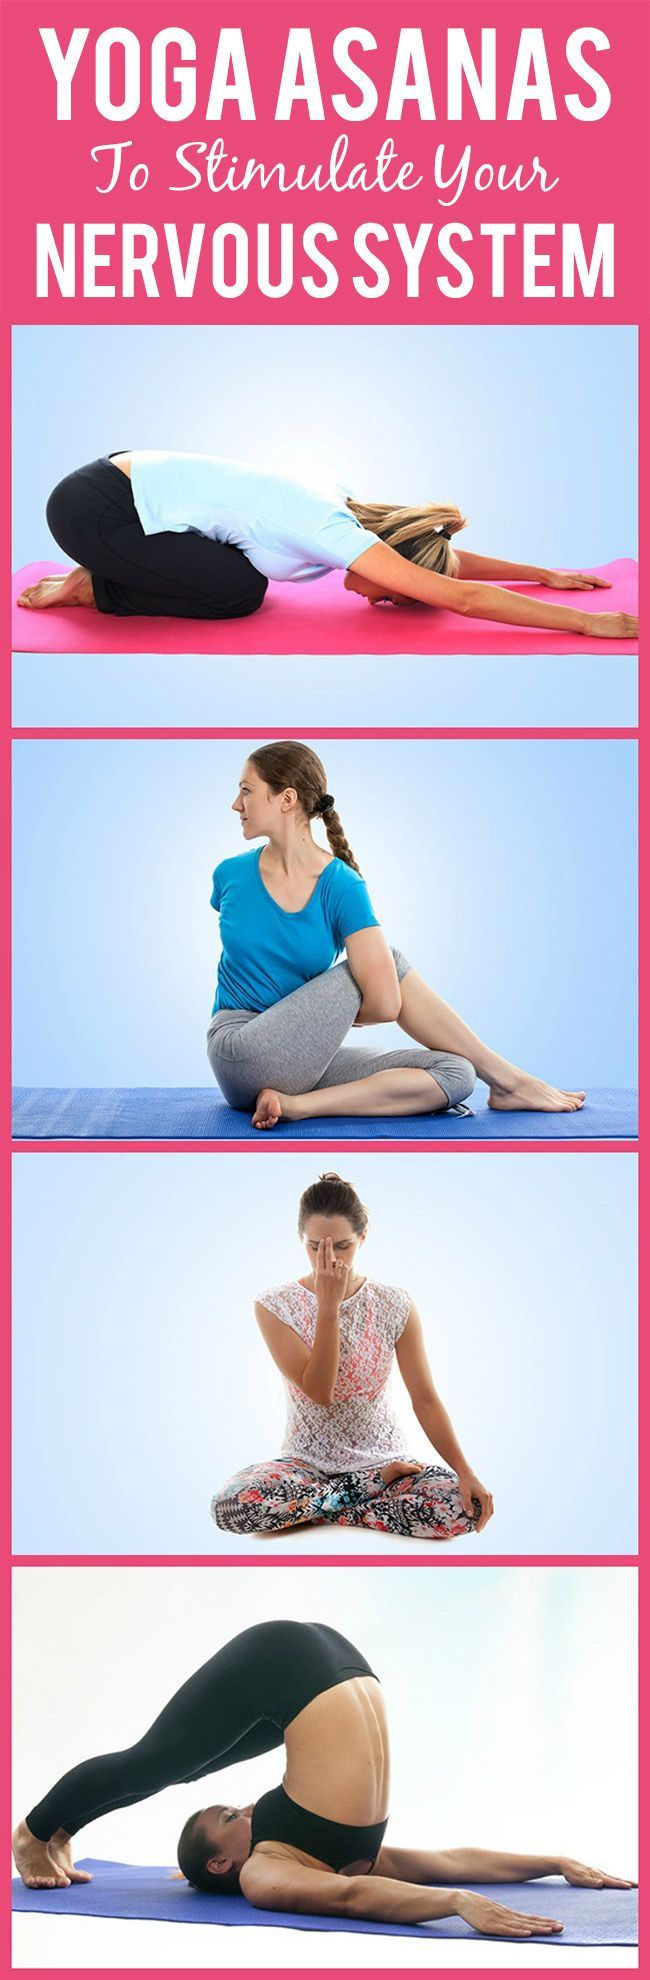 5 Best Yoga Asanas To Treat Ovarian Cysts photo